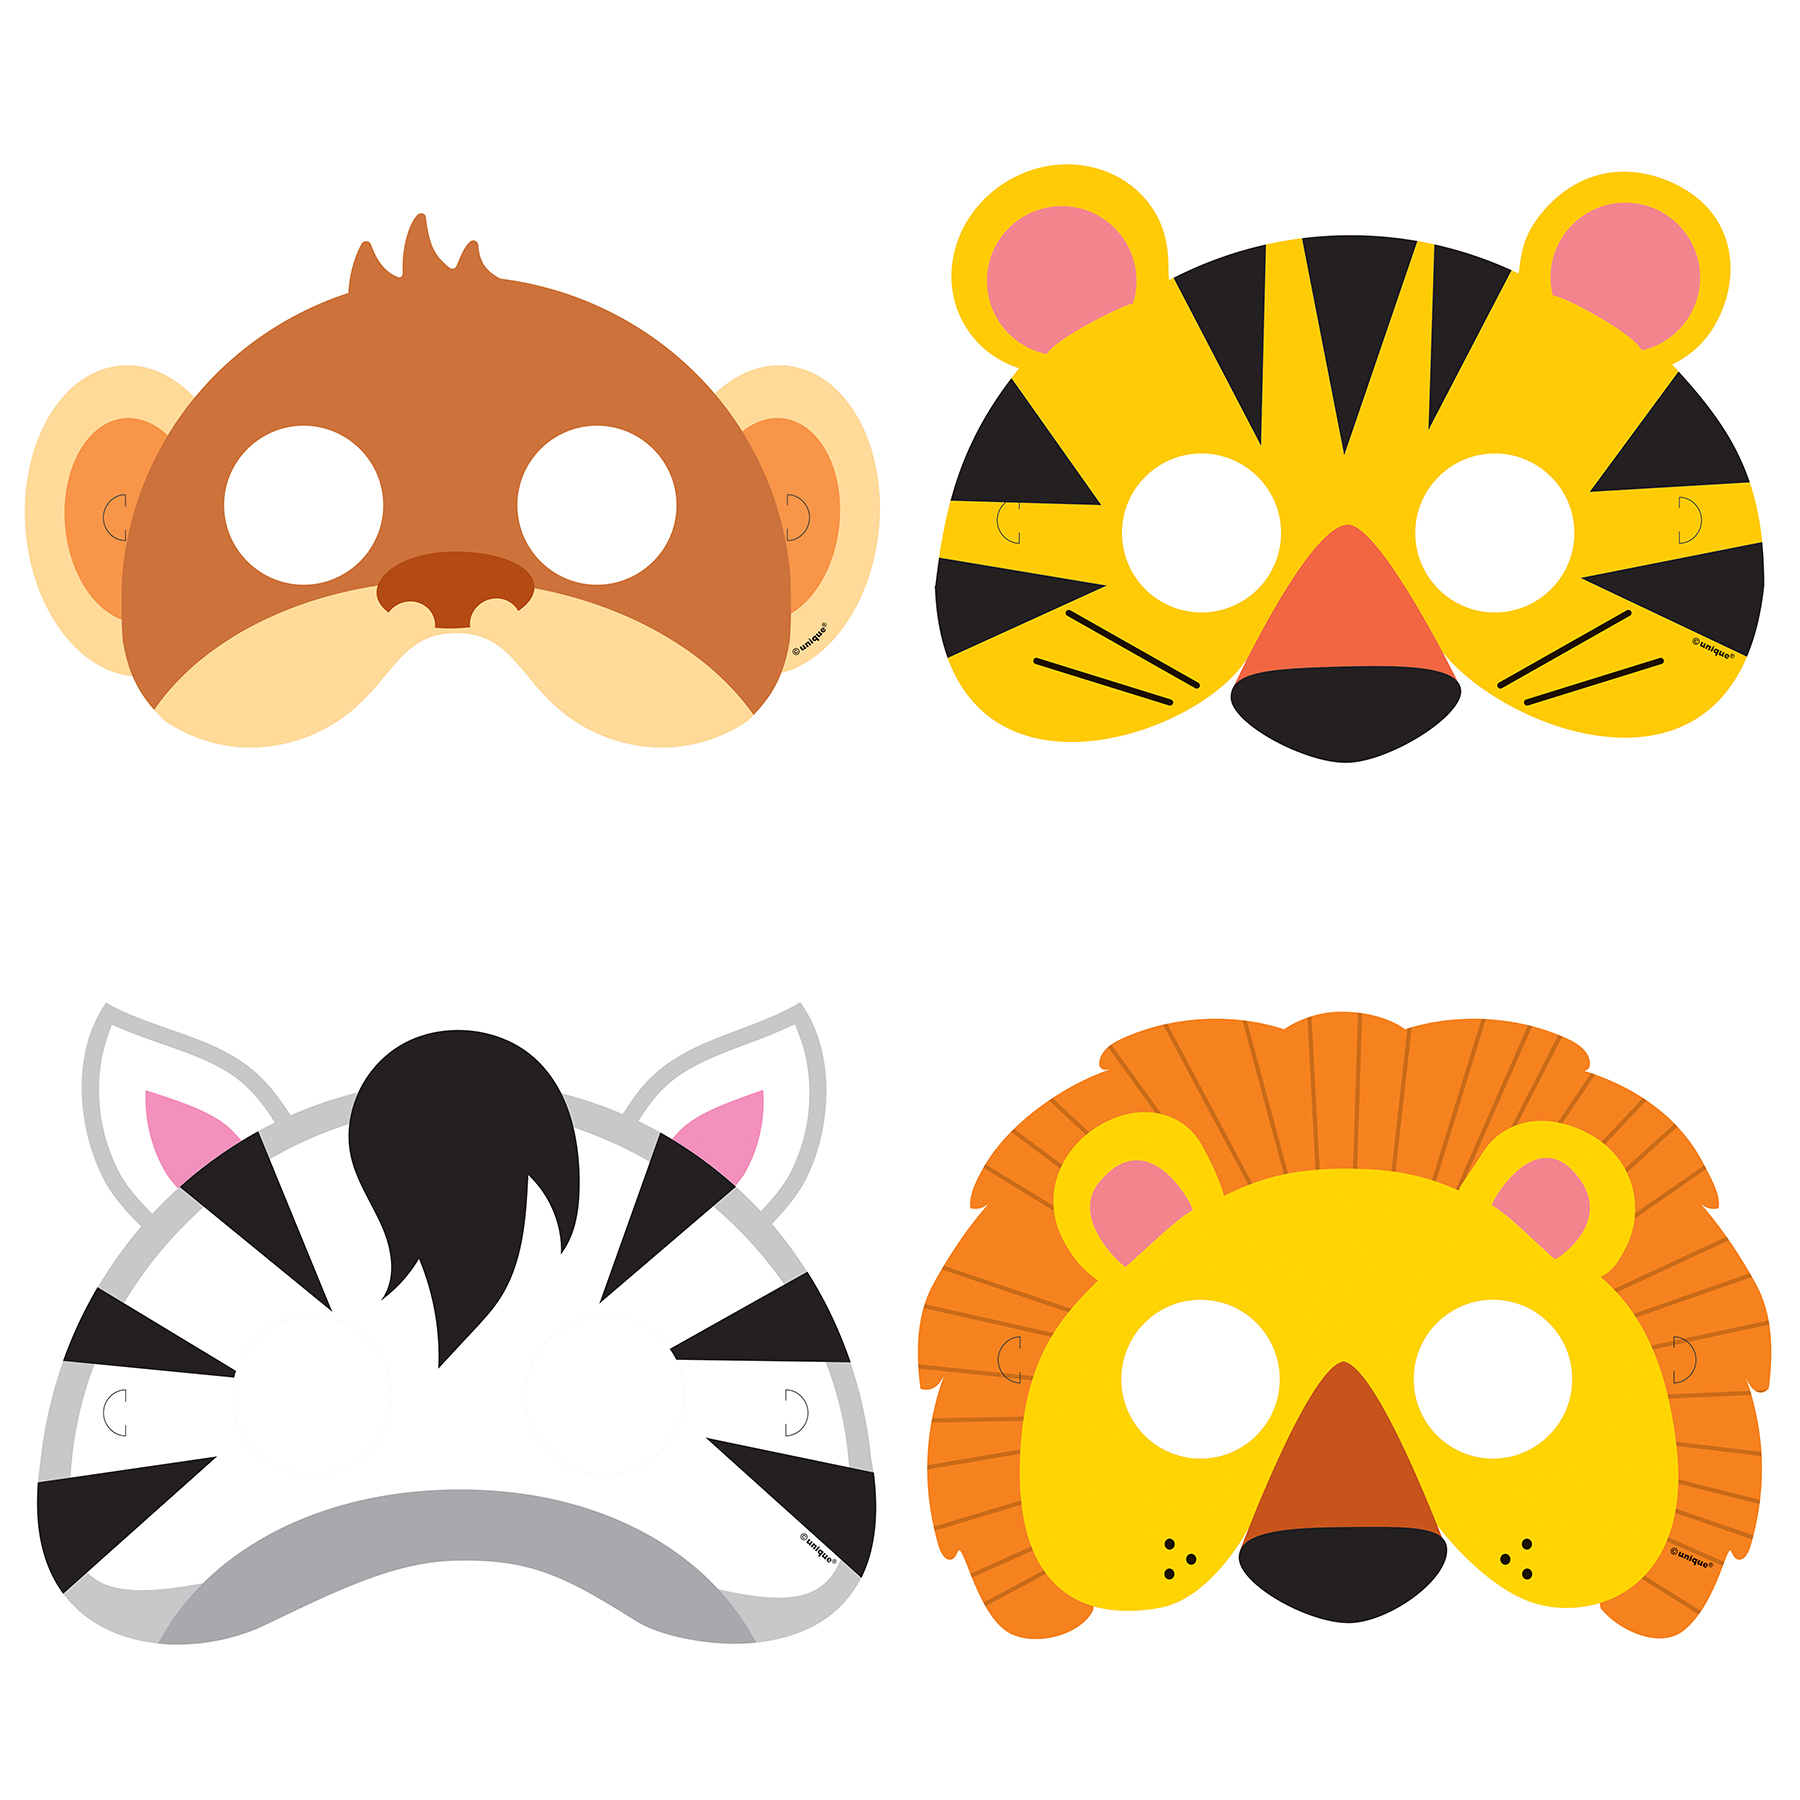 Mask clipart animal. Free download best